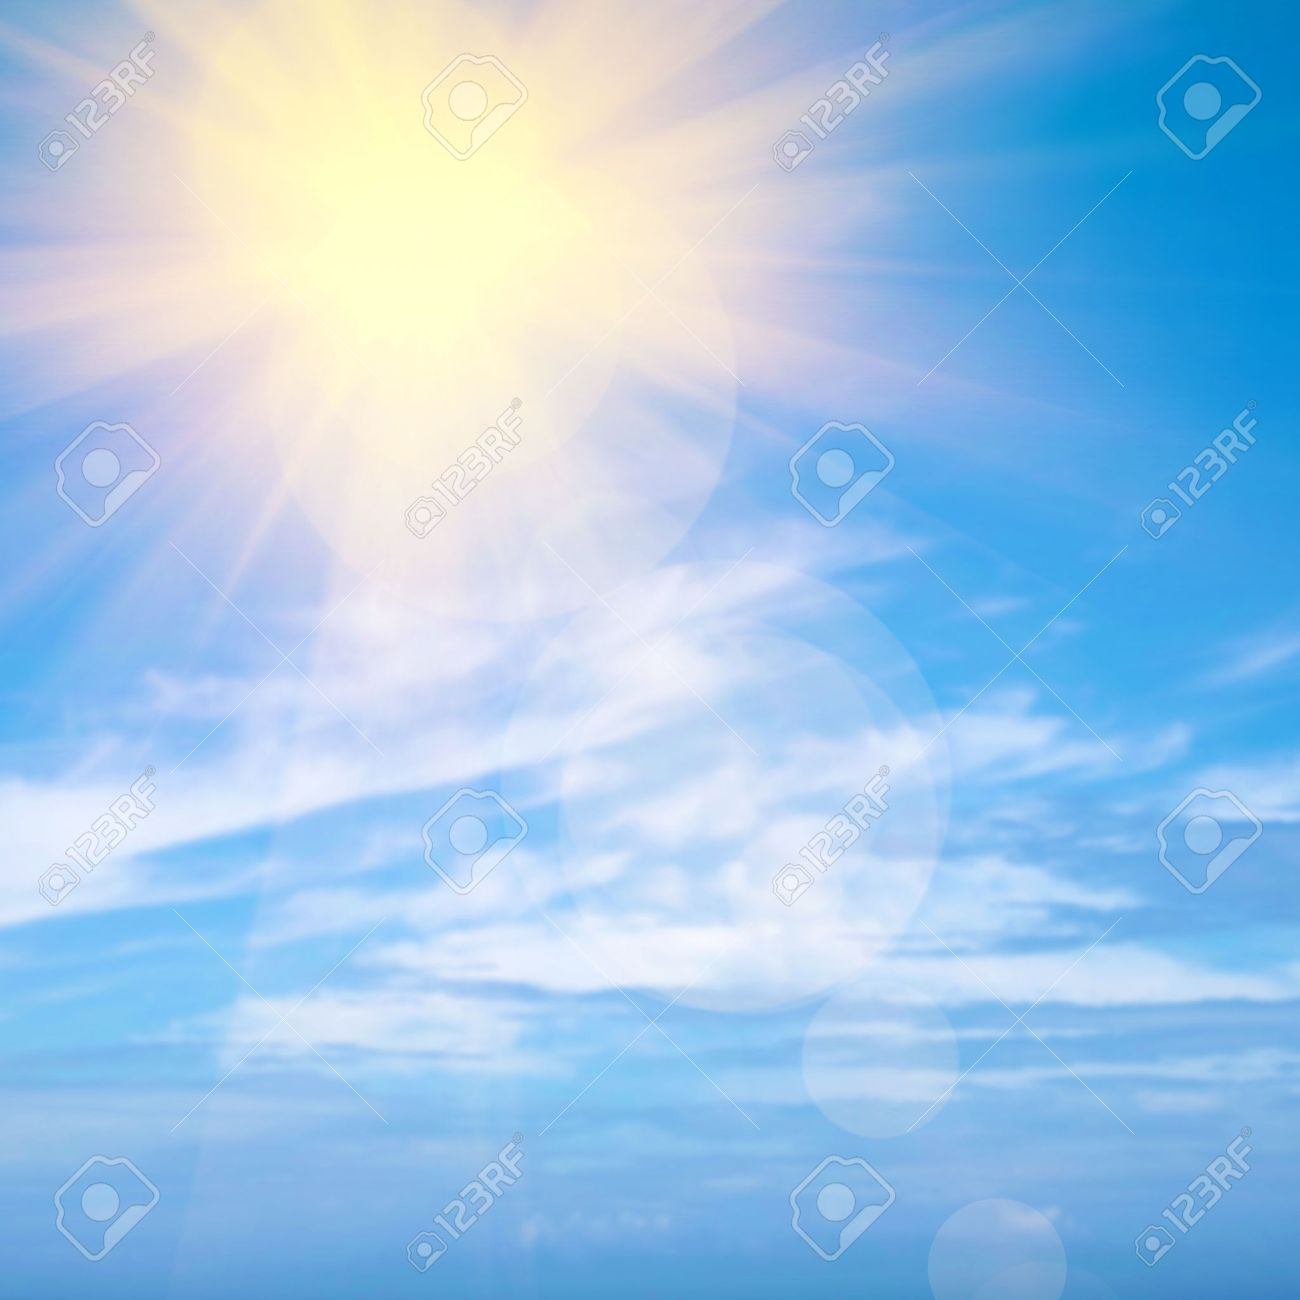 Heavenly blue sky with bright sunshine and light beams - 37139058